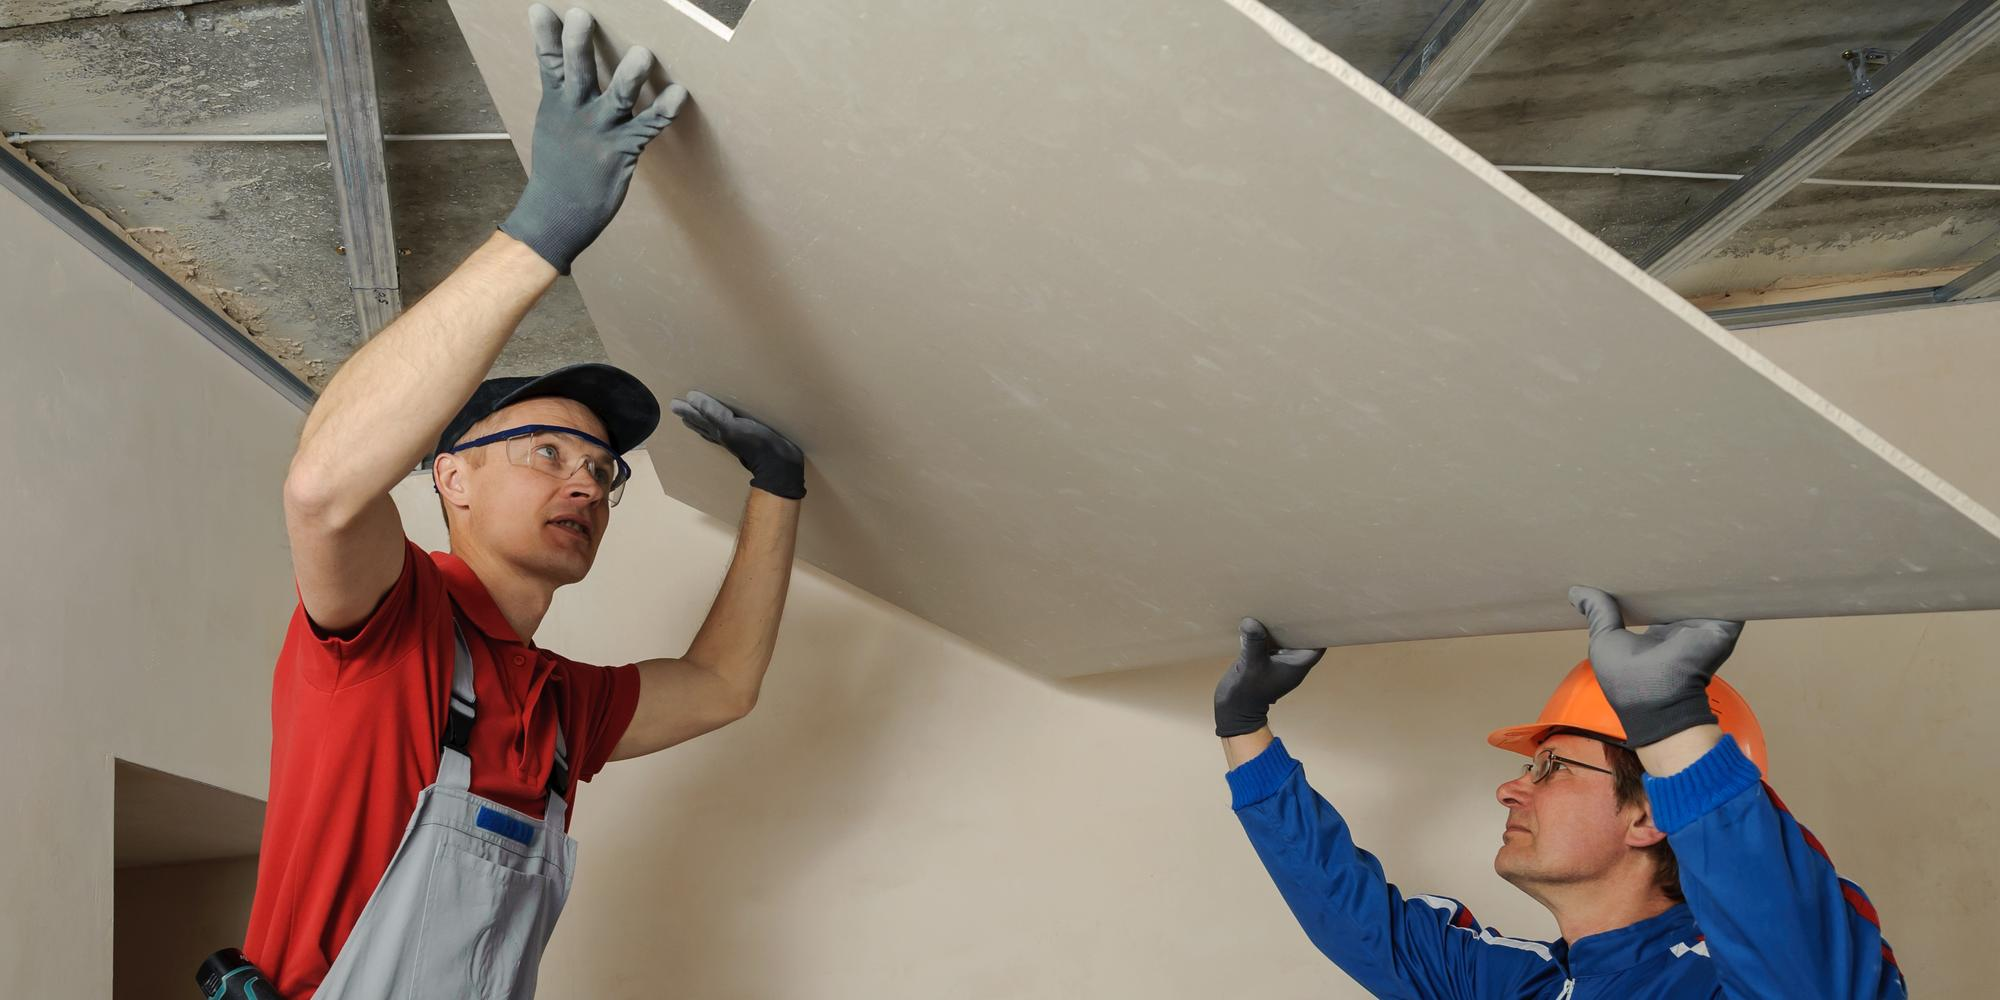 How Do I Find A Good Drywall Contractor